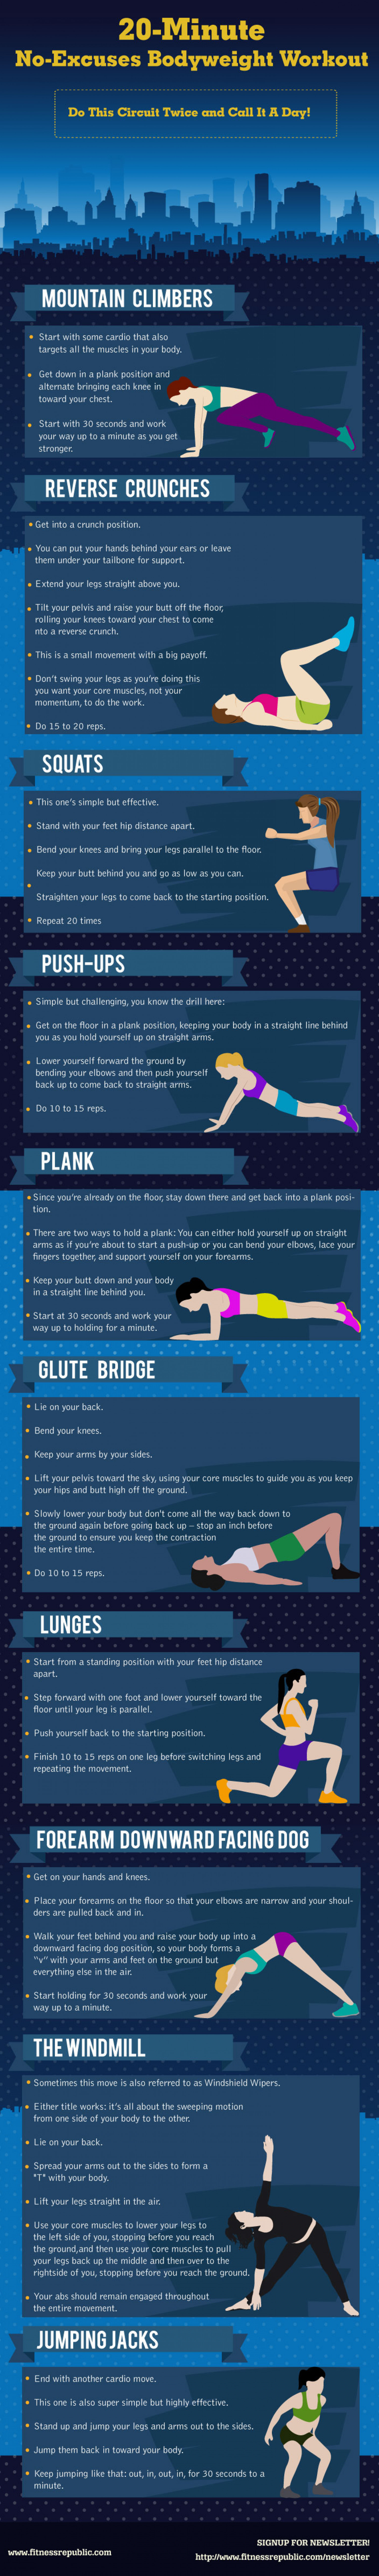 20-Minute No-Excuses Bodyweight Workout Infographic